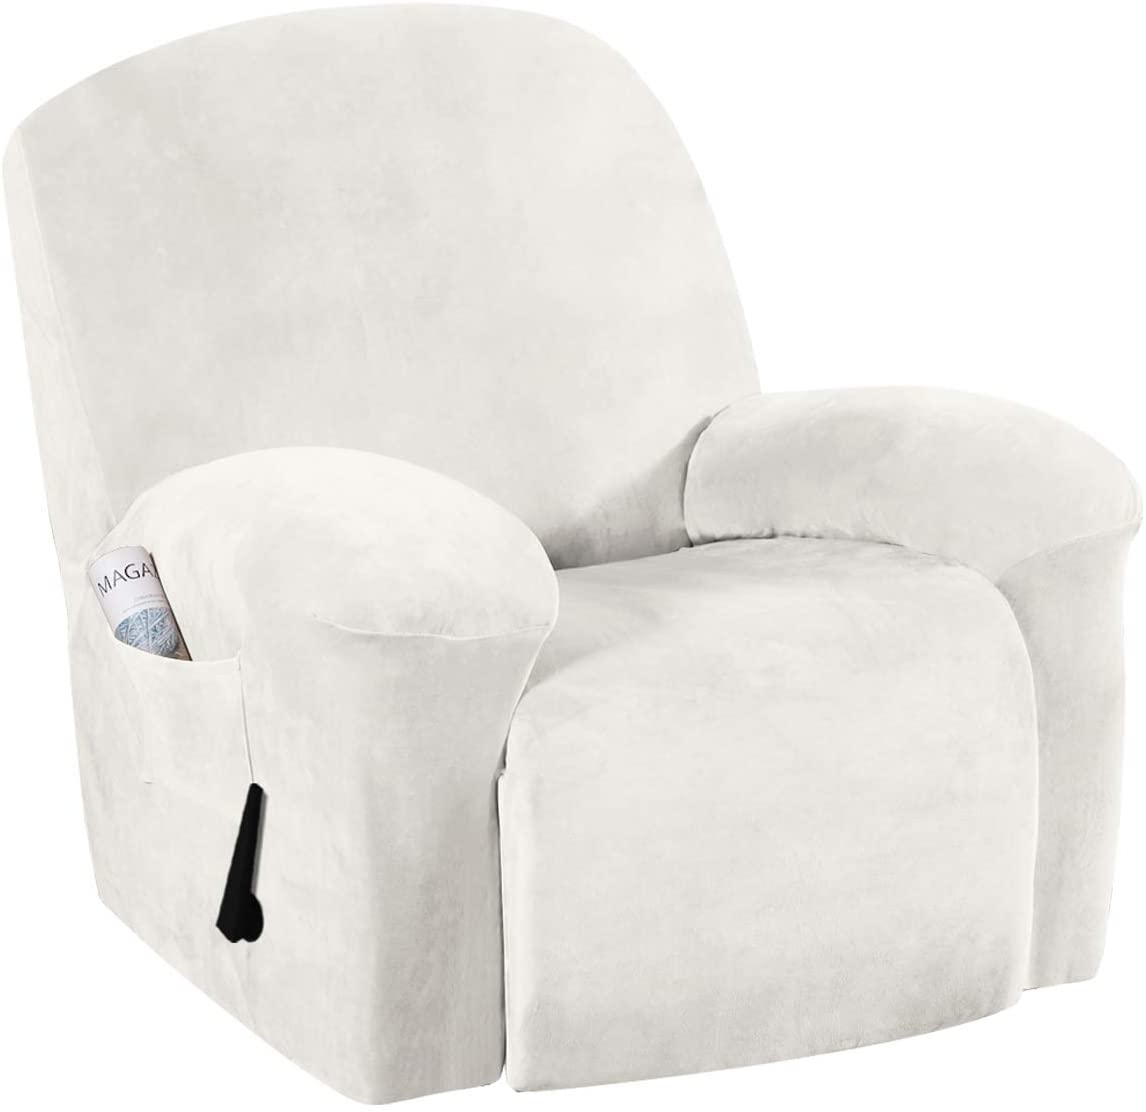 1-Piece Furniture Cover Ultra Stretch Velvet Plush Slipcovers Furniture Protector with Elastic Bottom, Anti-Slip Foams Attached Couch Shield Recliner Sofa Cover (Recliner, Ivory)